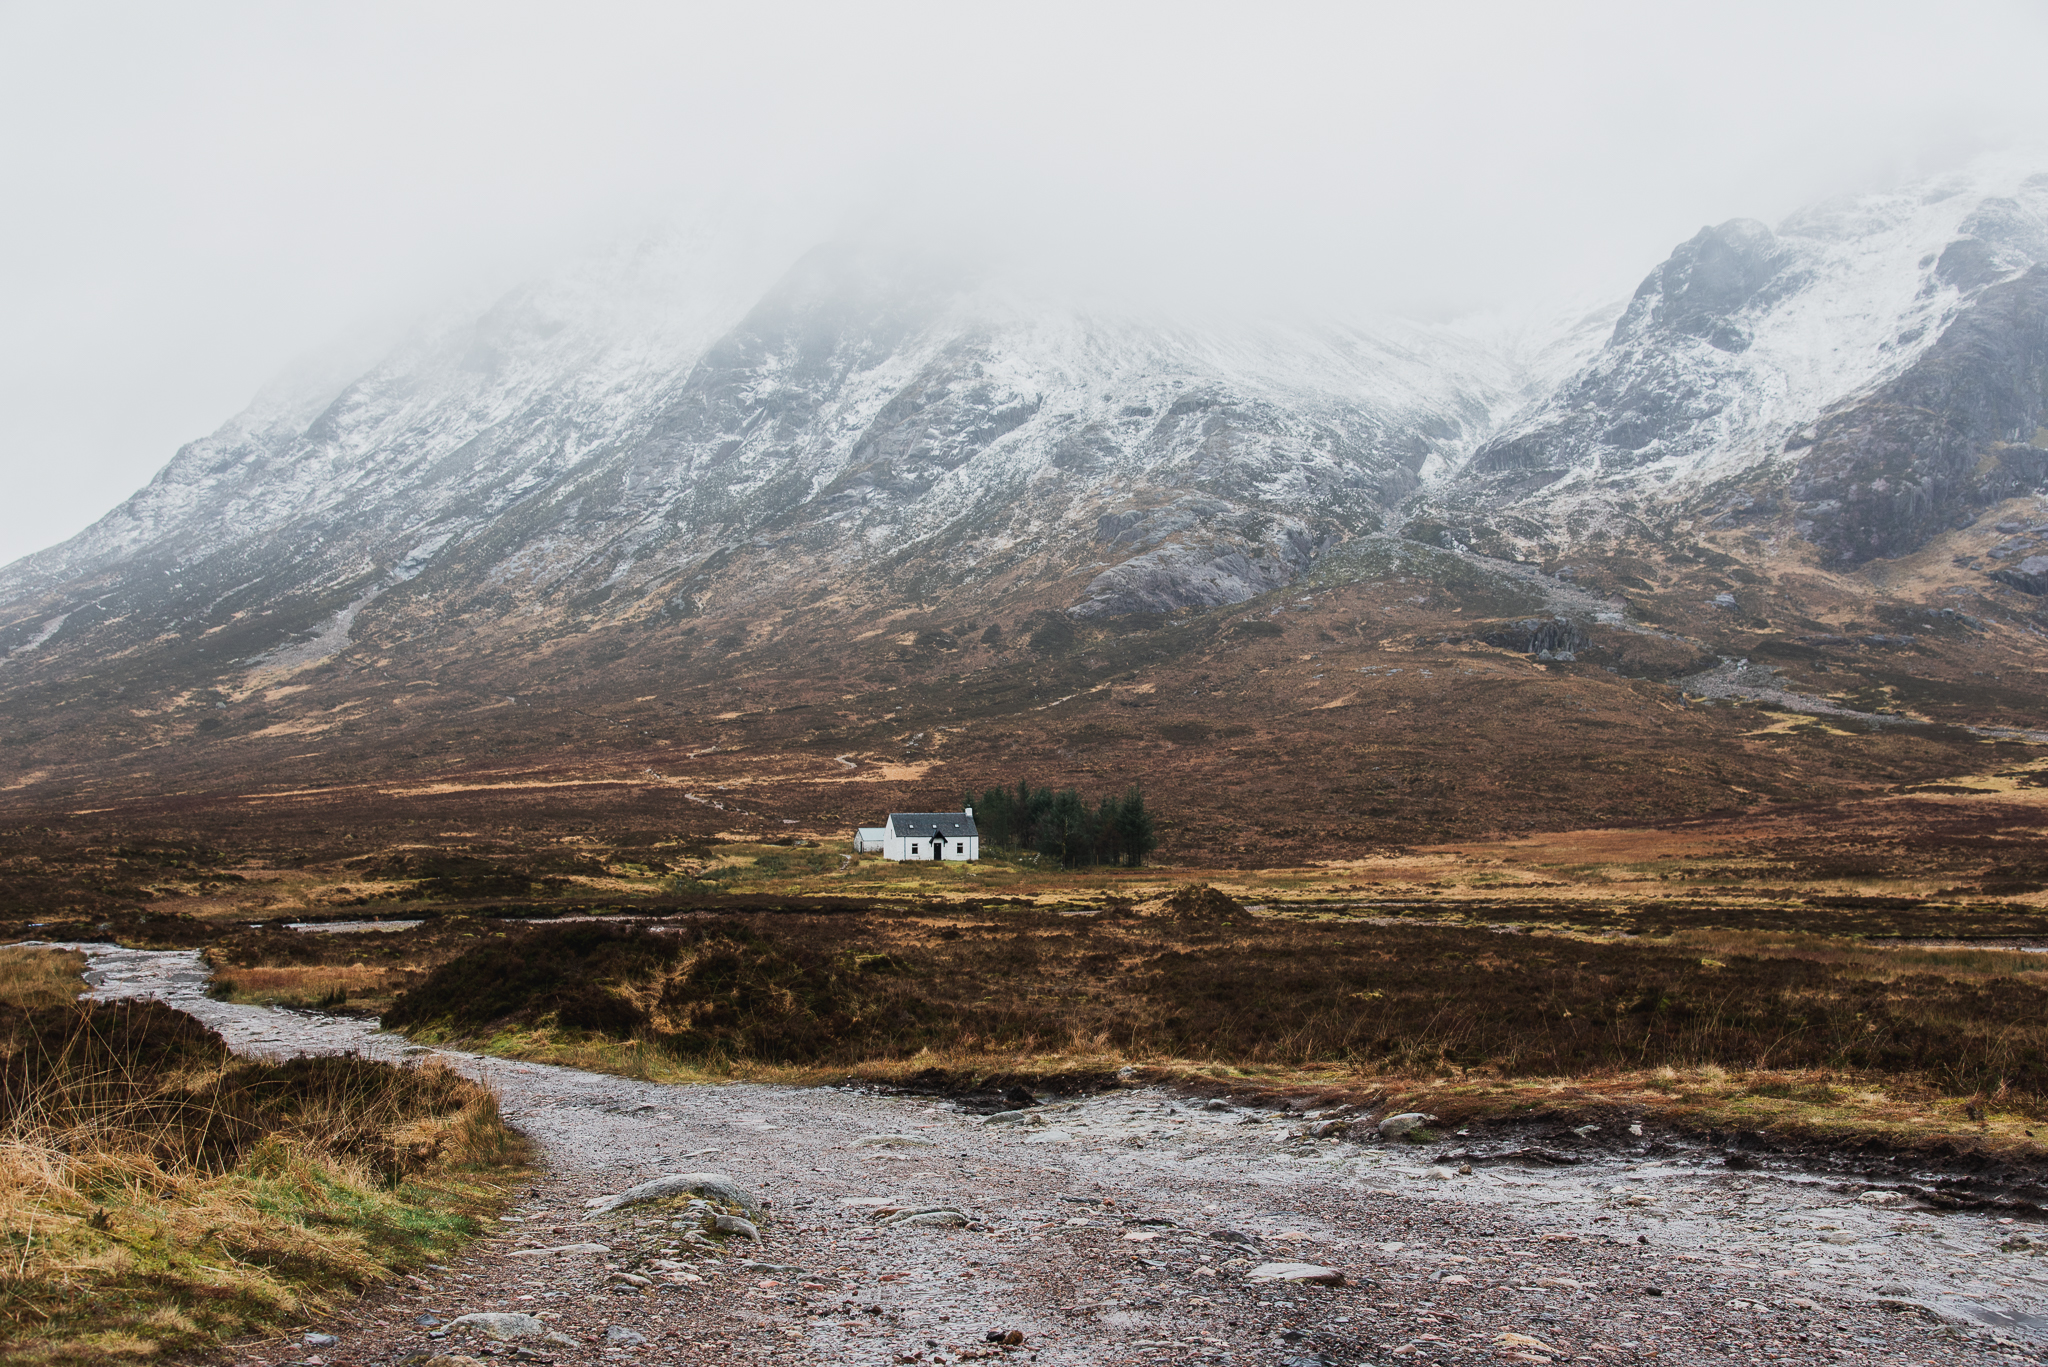 glencoe, scotland, landscape, photogrpahy, wilderness, mountains, cottage, snow